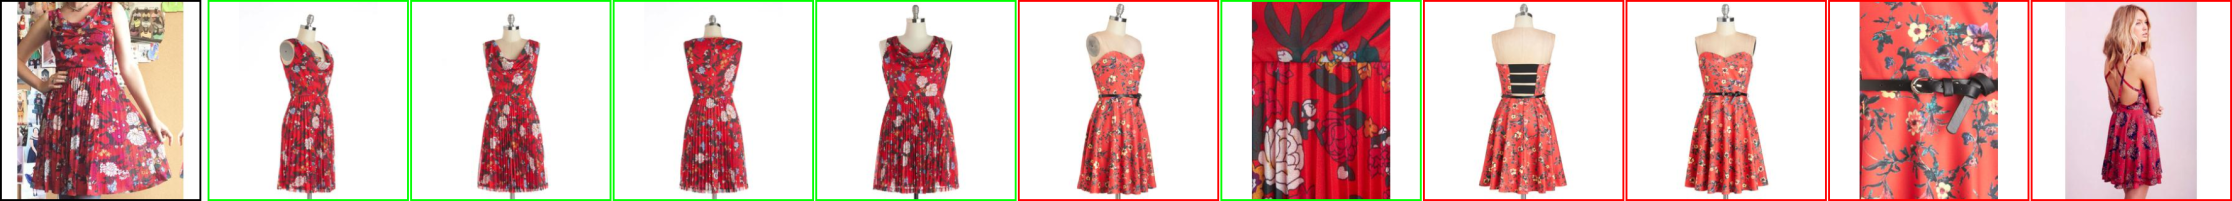 Similar products - AI model - examples (red dresses)